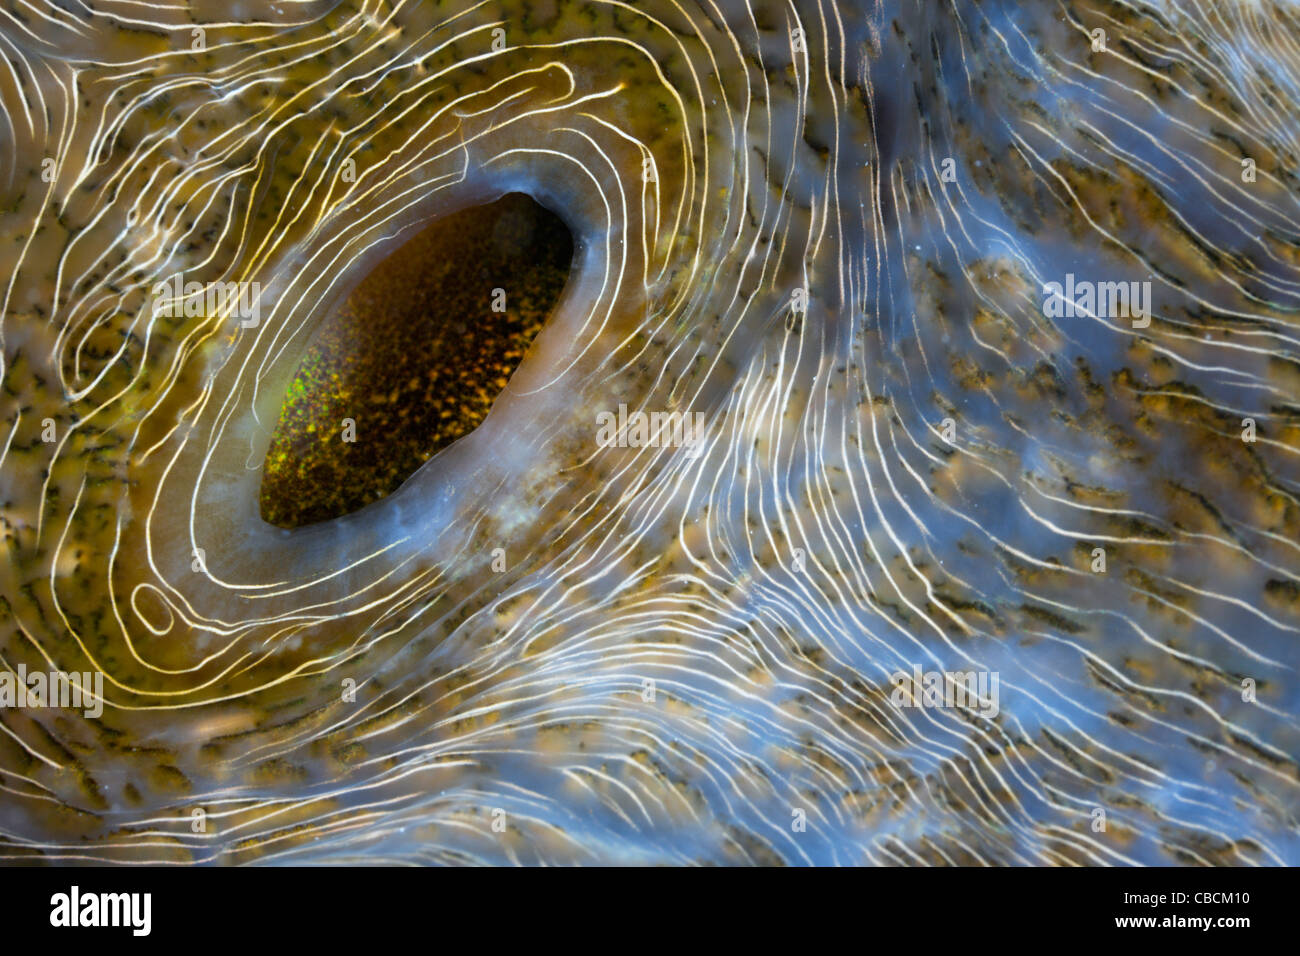 Detail of Great Clam, Tridacna squamosa, Cenderawasih Bay, West Papua, Indonesia Stock Photo